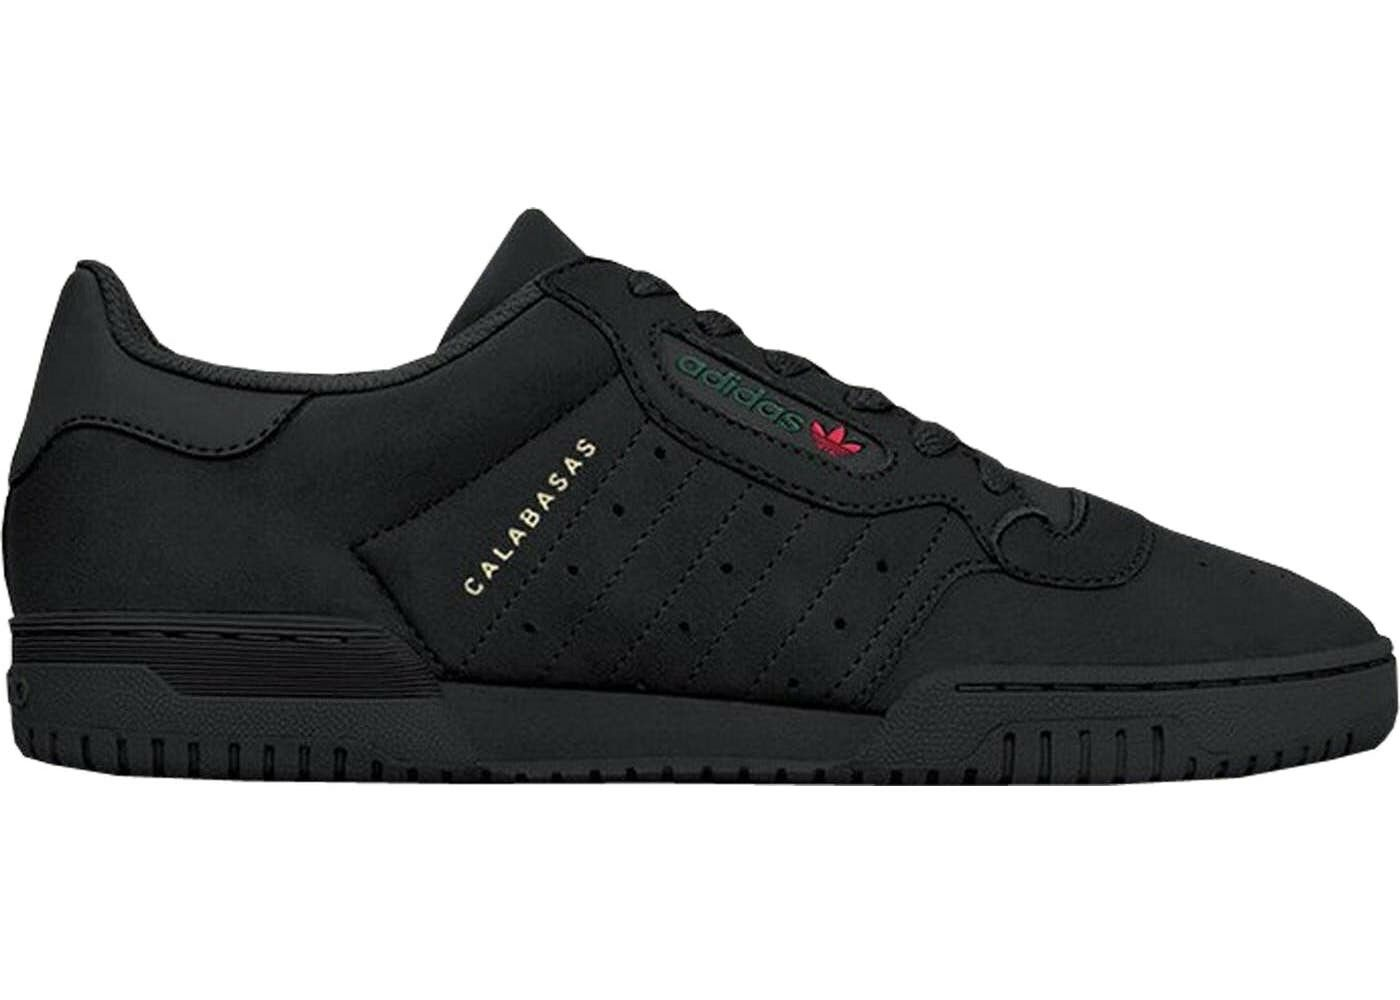 MENS ADIDAS YEEZY POWERPHASE POWERPHASE POWERPHASE CALABASAS CORE BLACK SIZE 100% AUTH. 5f5290